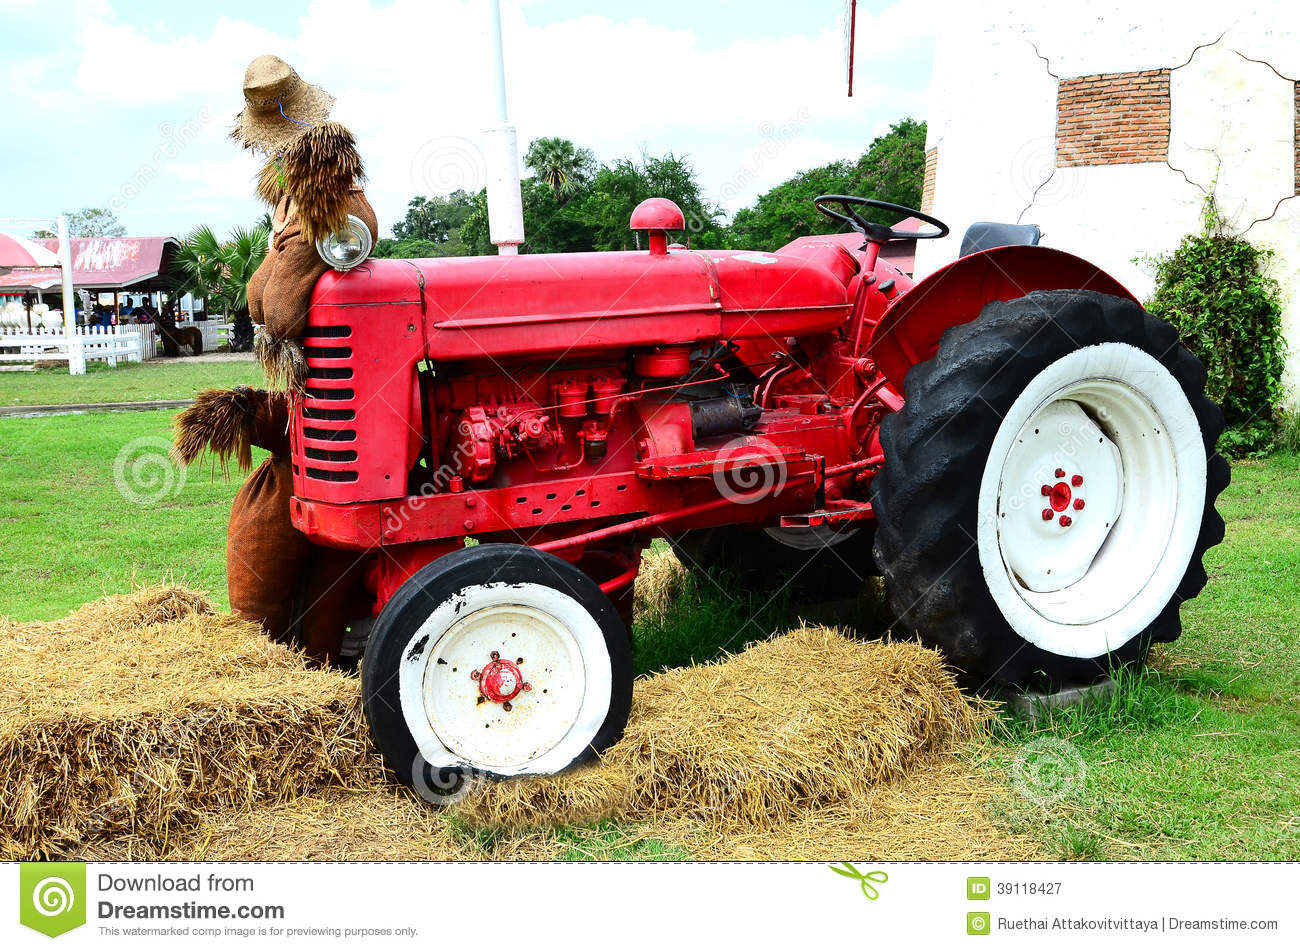 Rode oude roestige tractor